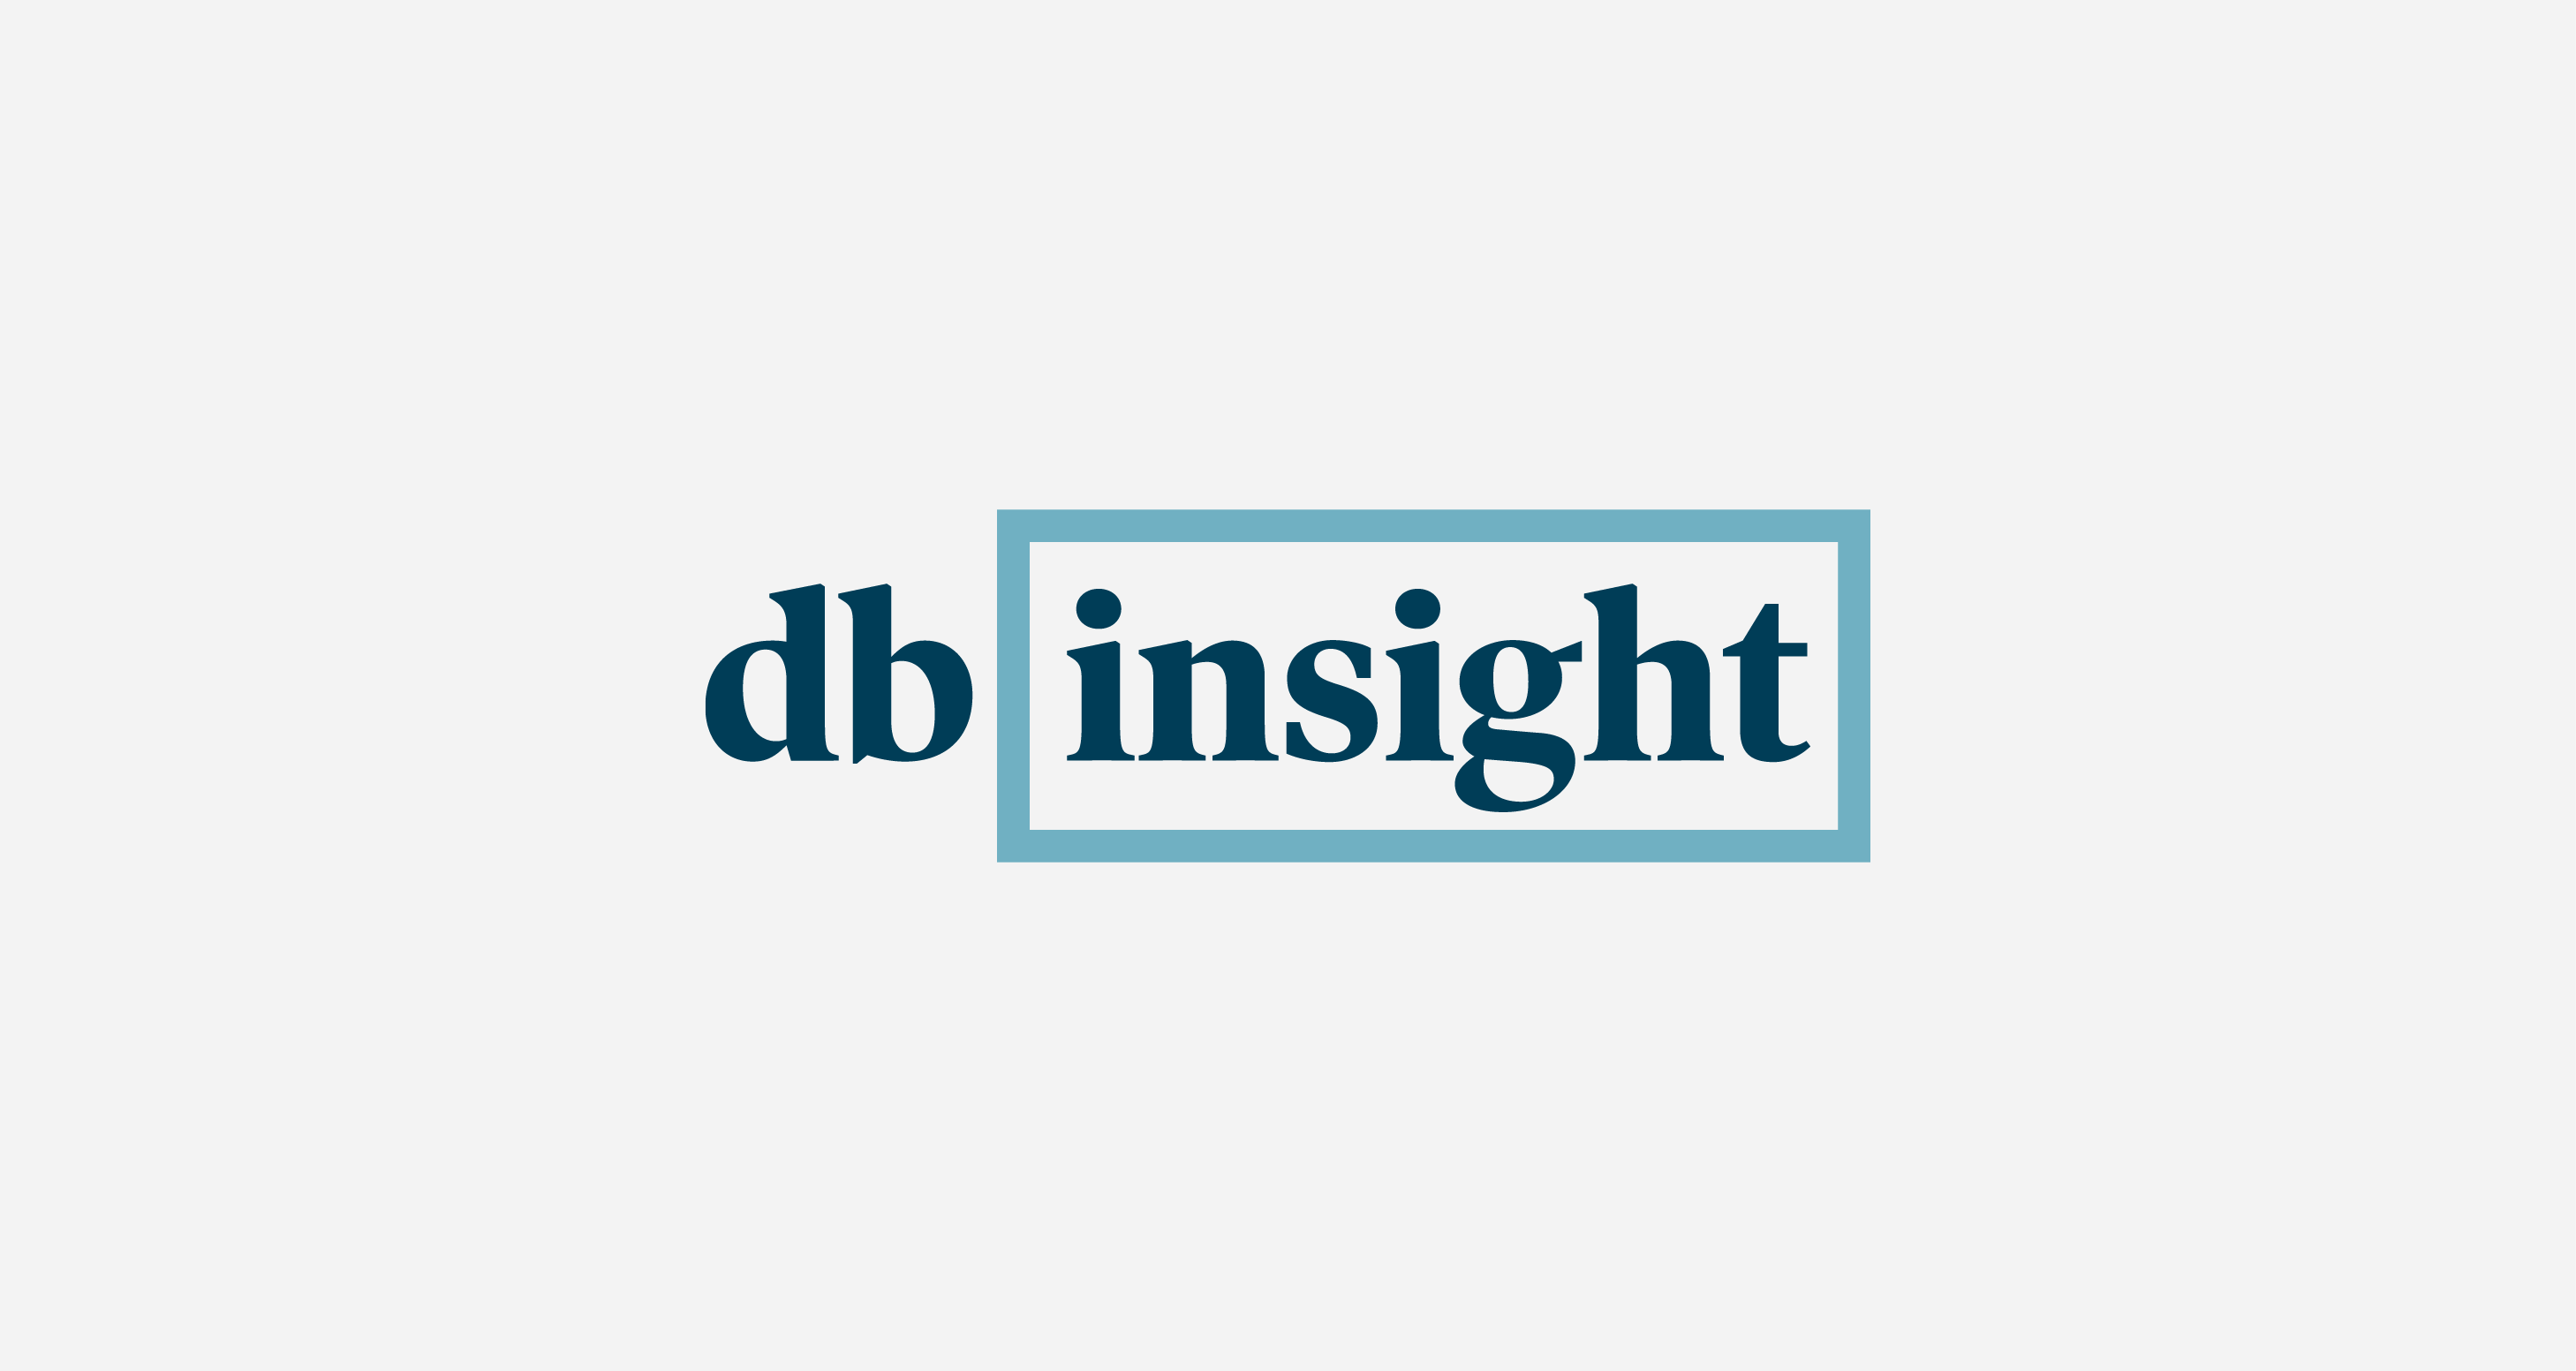 db insight